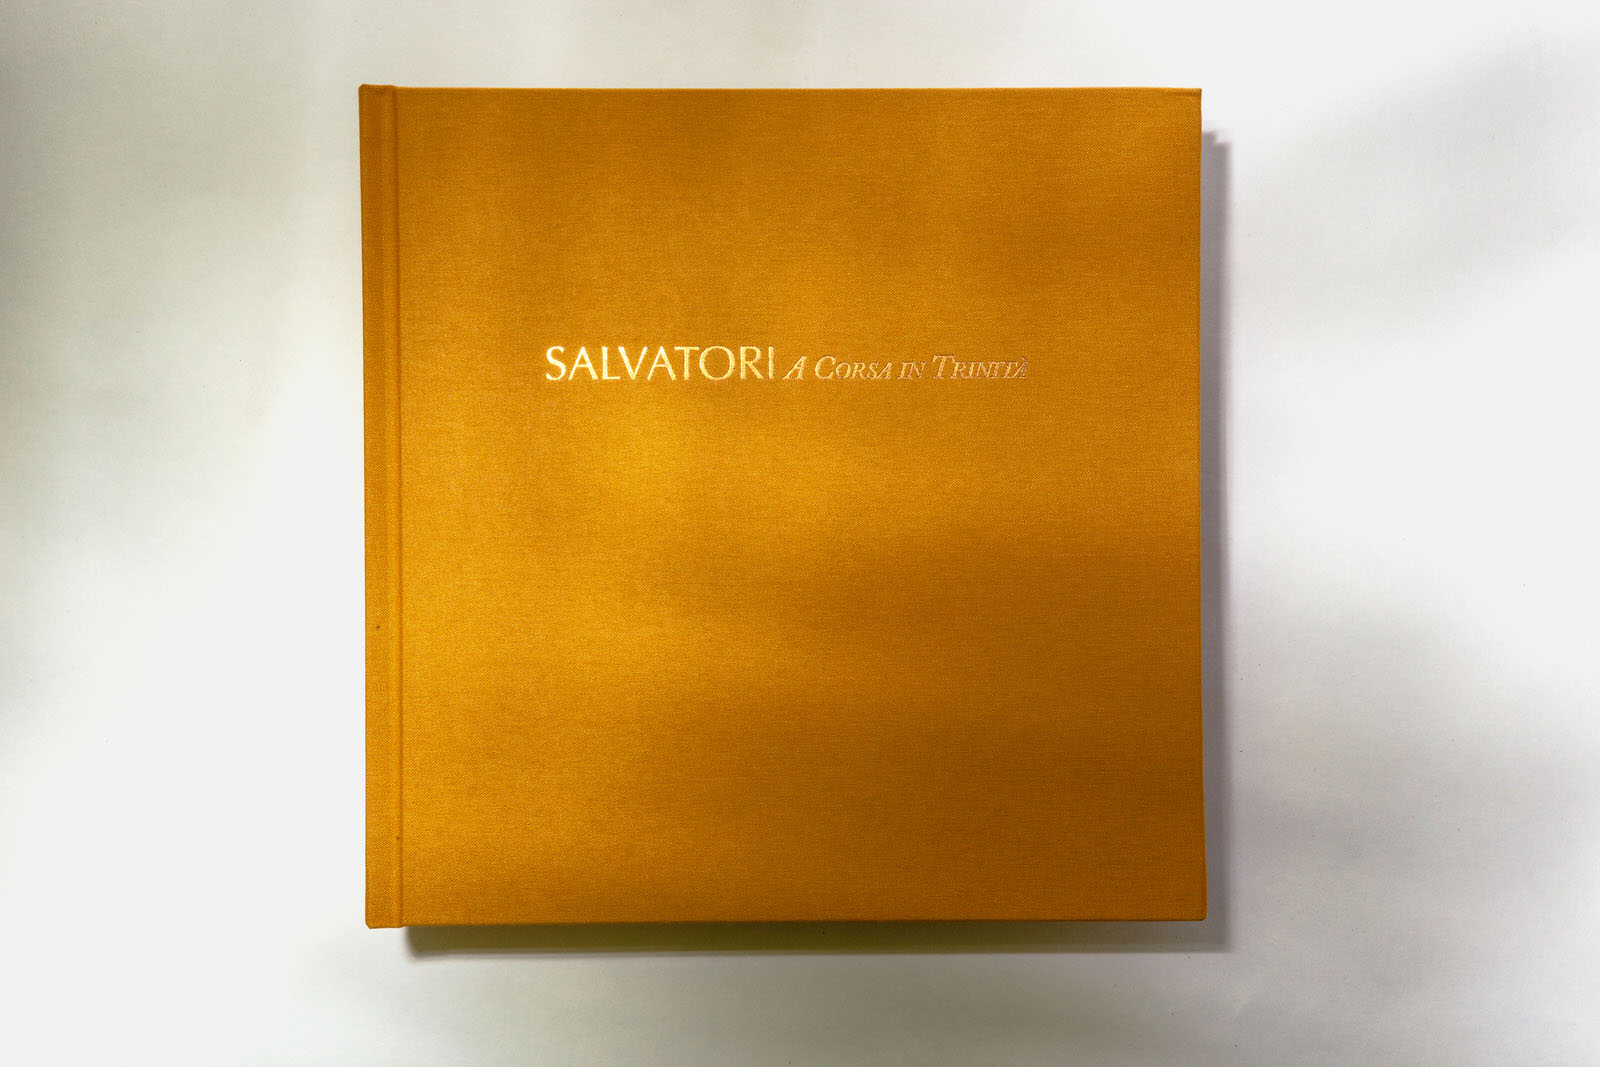 'SALVATORI: A Corsa in Trinità' - This book details the incredible life of Joseph Salvatori:His crossing from Corsica to the Americas in the late 1800s with no more than 35 francs to his name, and his building of a business and life of such consequence that Charles de Gaulle goes on to personally acknowledge him in his memoirs…The book transformed an amazing legacy into a tangible and timeless heirloom, paying tribute to elders and ensuring the family's history and identity were captured for generations to come.A truly stunning book, and you can learn more about it by clicking here!